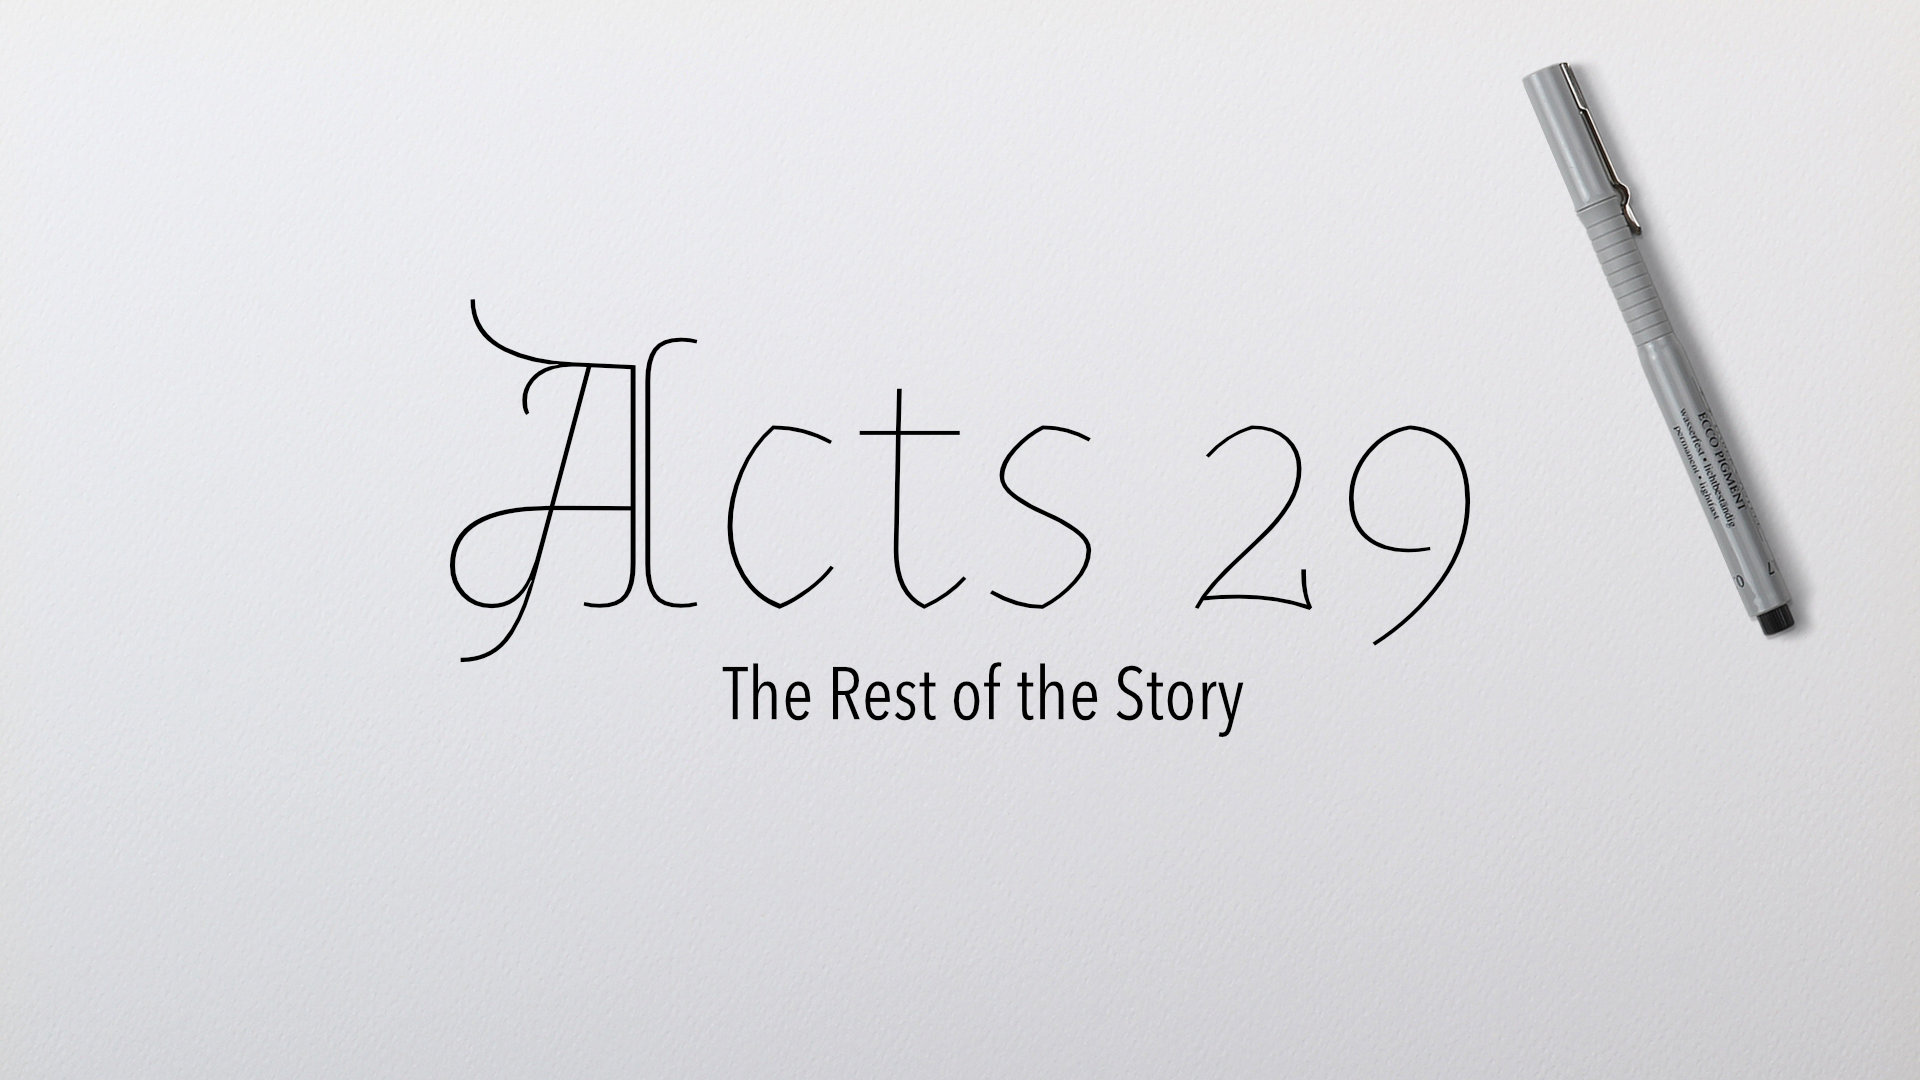 Acts 29 The Rest of the Story.jpg